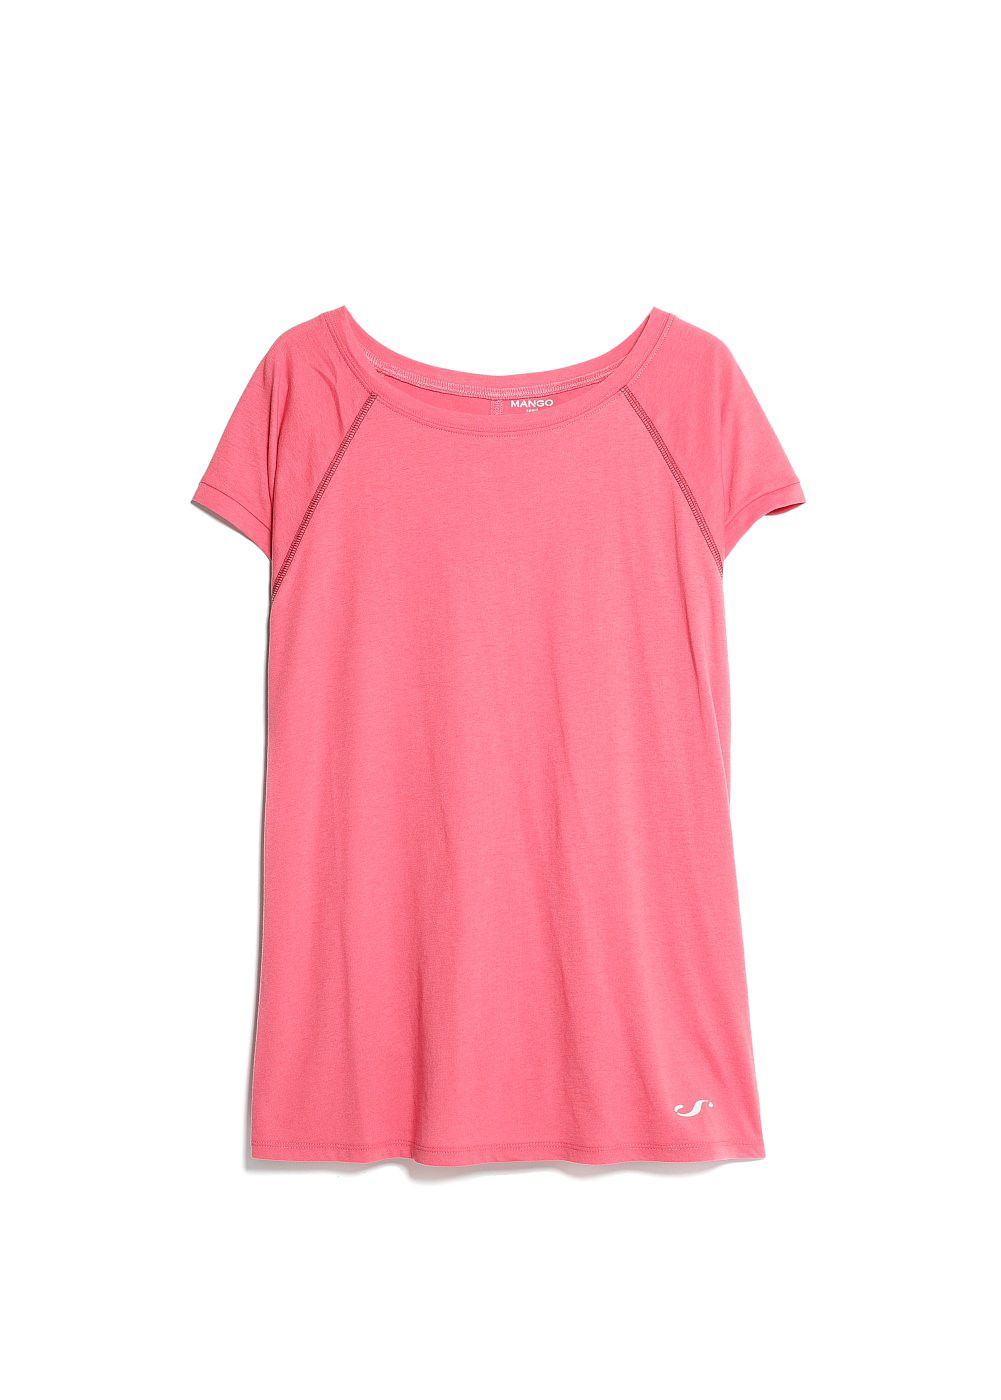 Mango Comfort breathable t-shirt, Pink